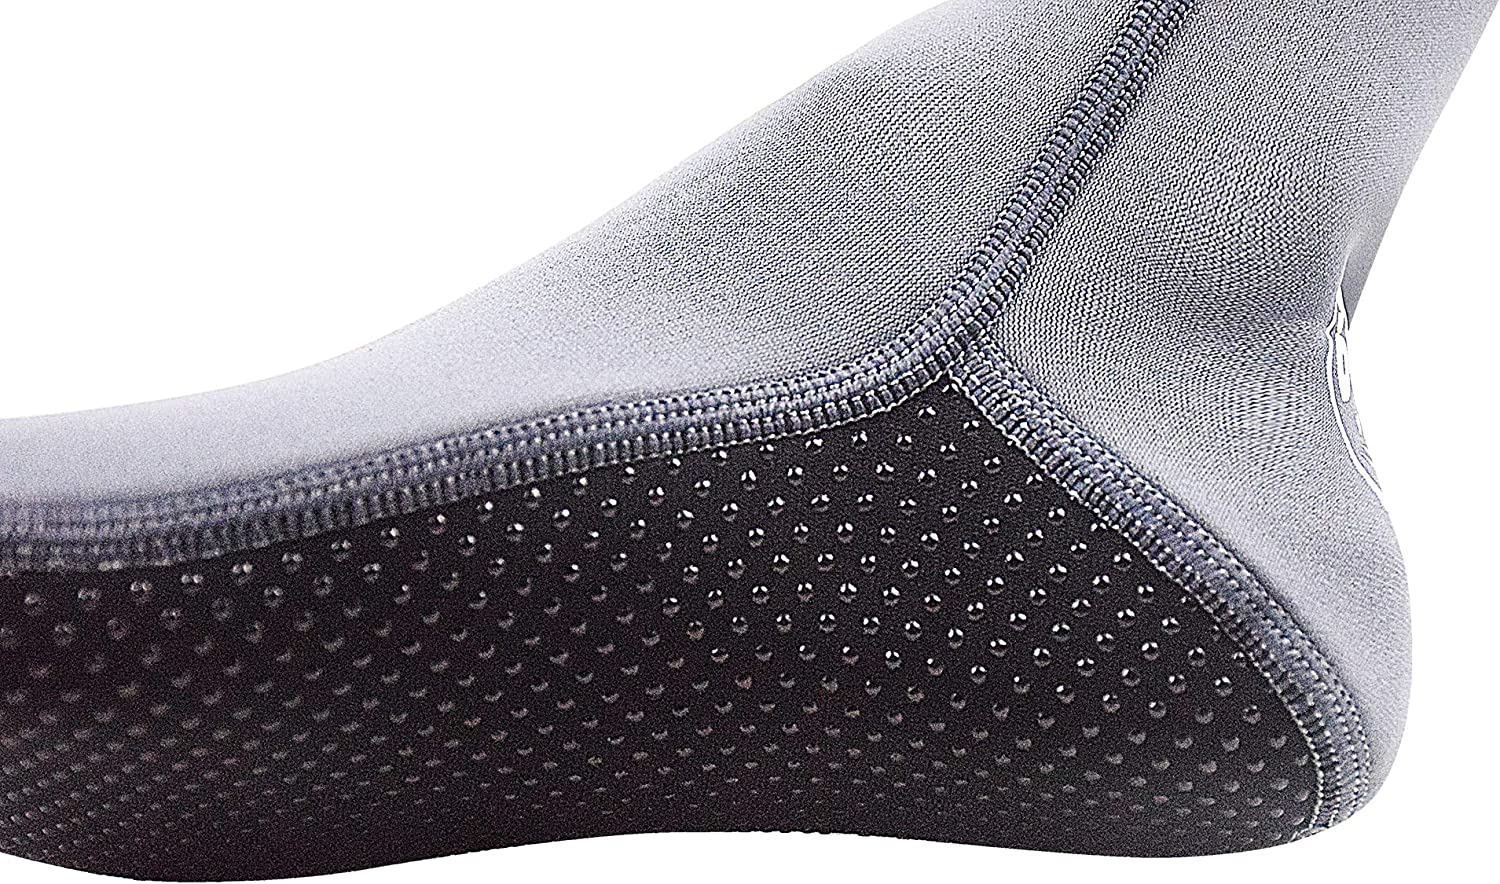 Swimming Water Sports Keep Your Feet Warm and Provided Protection Sand-Proof Upgrade Design Wetsuit Sock for Snorkeling Kayak 3mm Neoprene Socks Black, L AILELAN Sand Socks